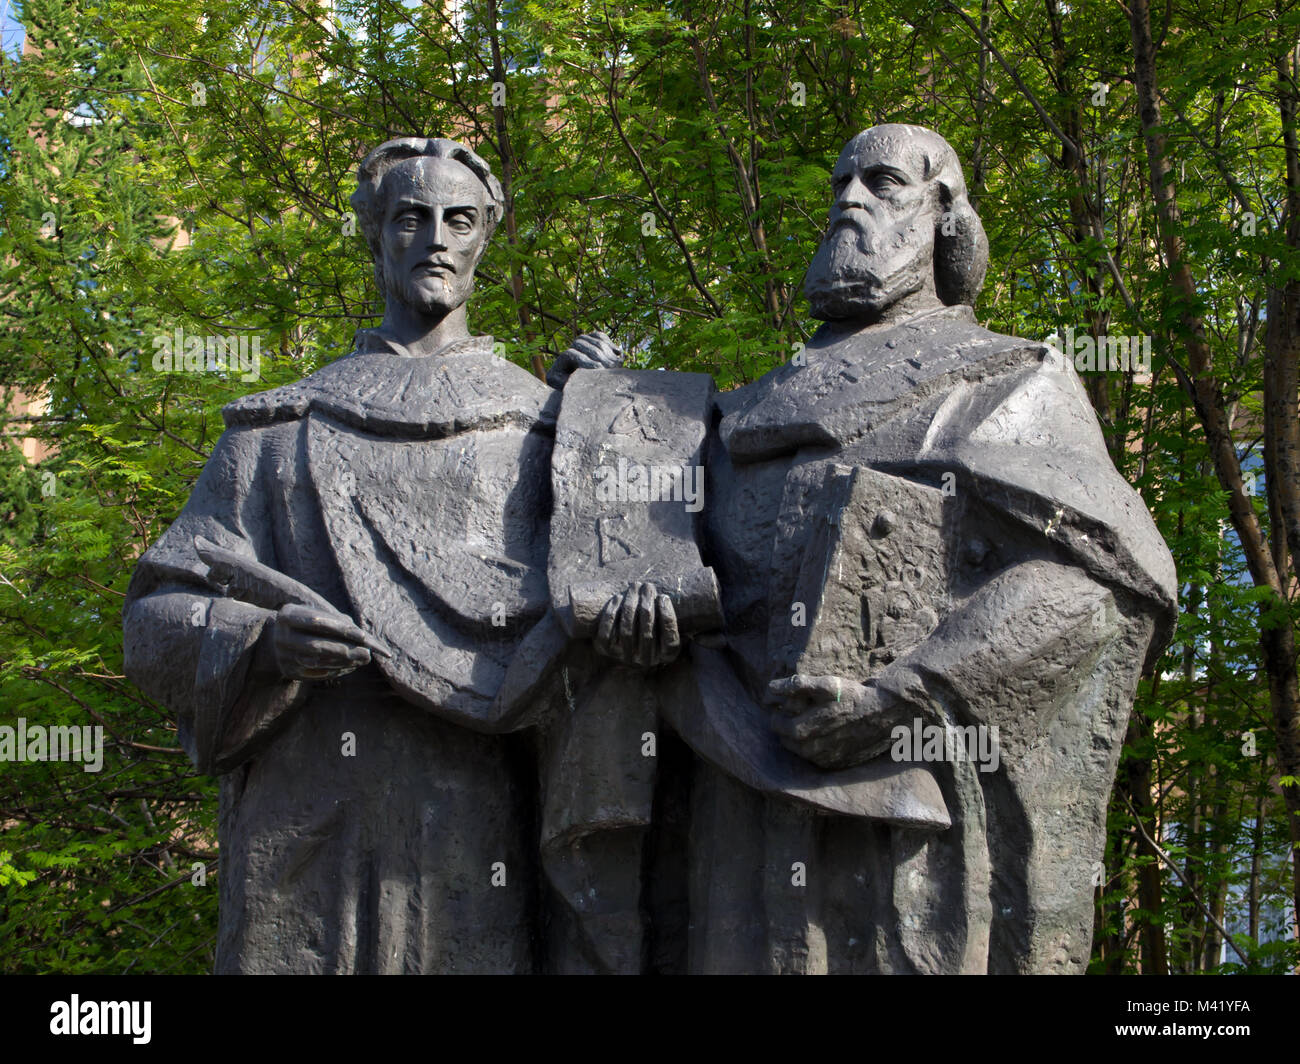 Murmansk, Russia - June 19, 2013, Fragment monument to the creators of the Slavic alphabet Saints Cyril and Methodius - Stock Image